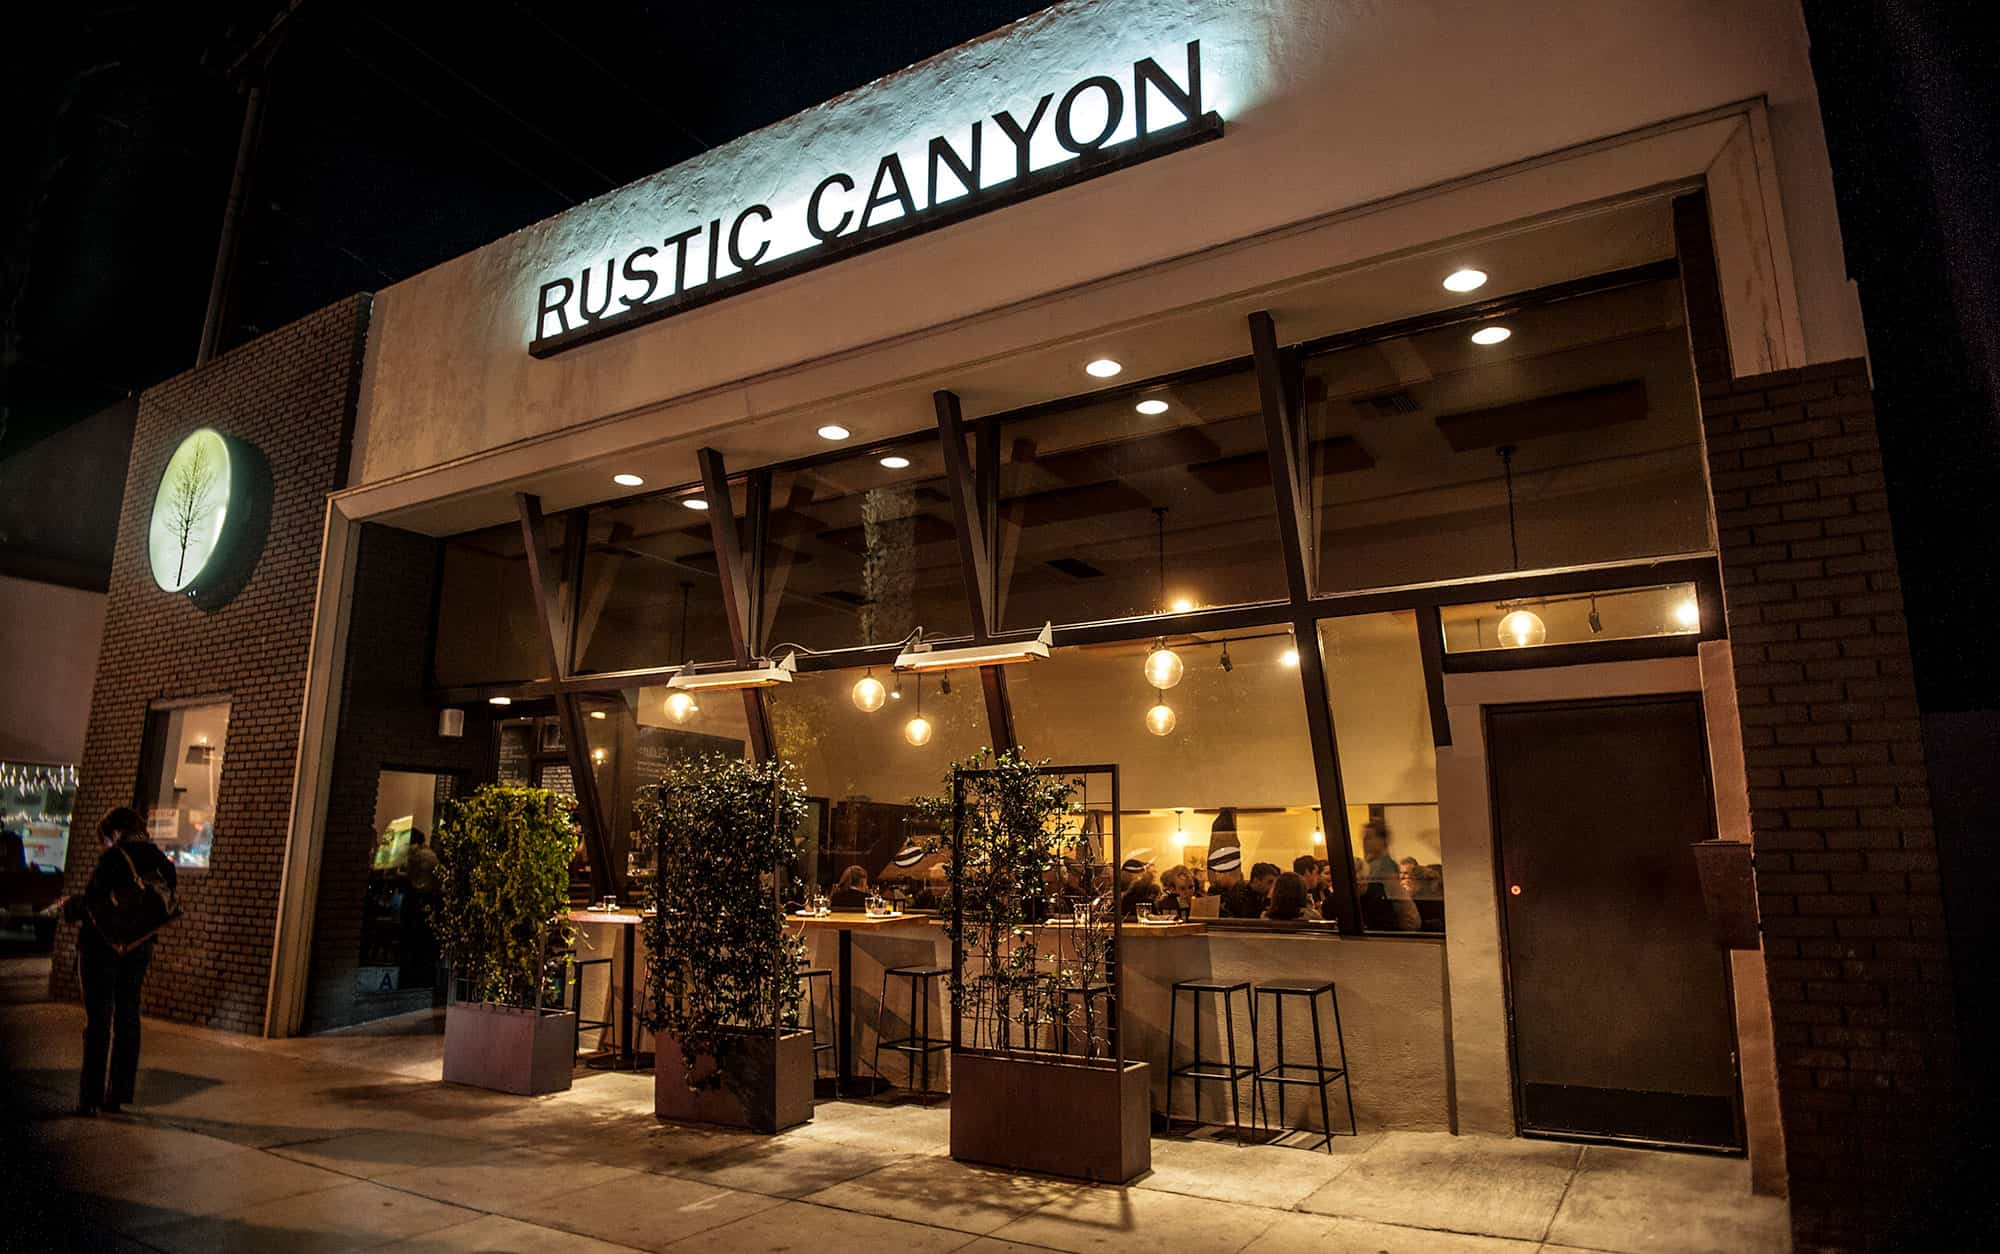 Rustic Canyon